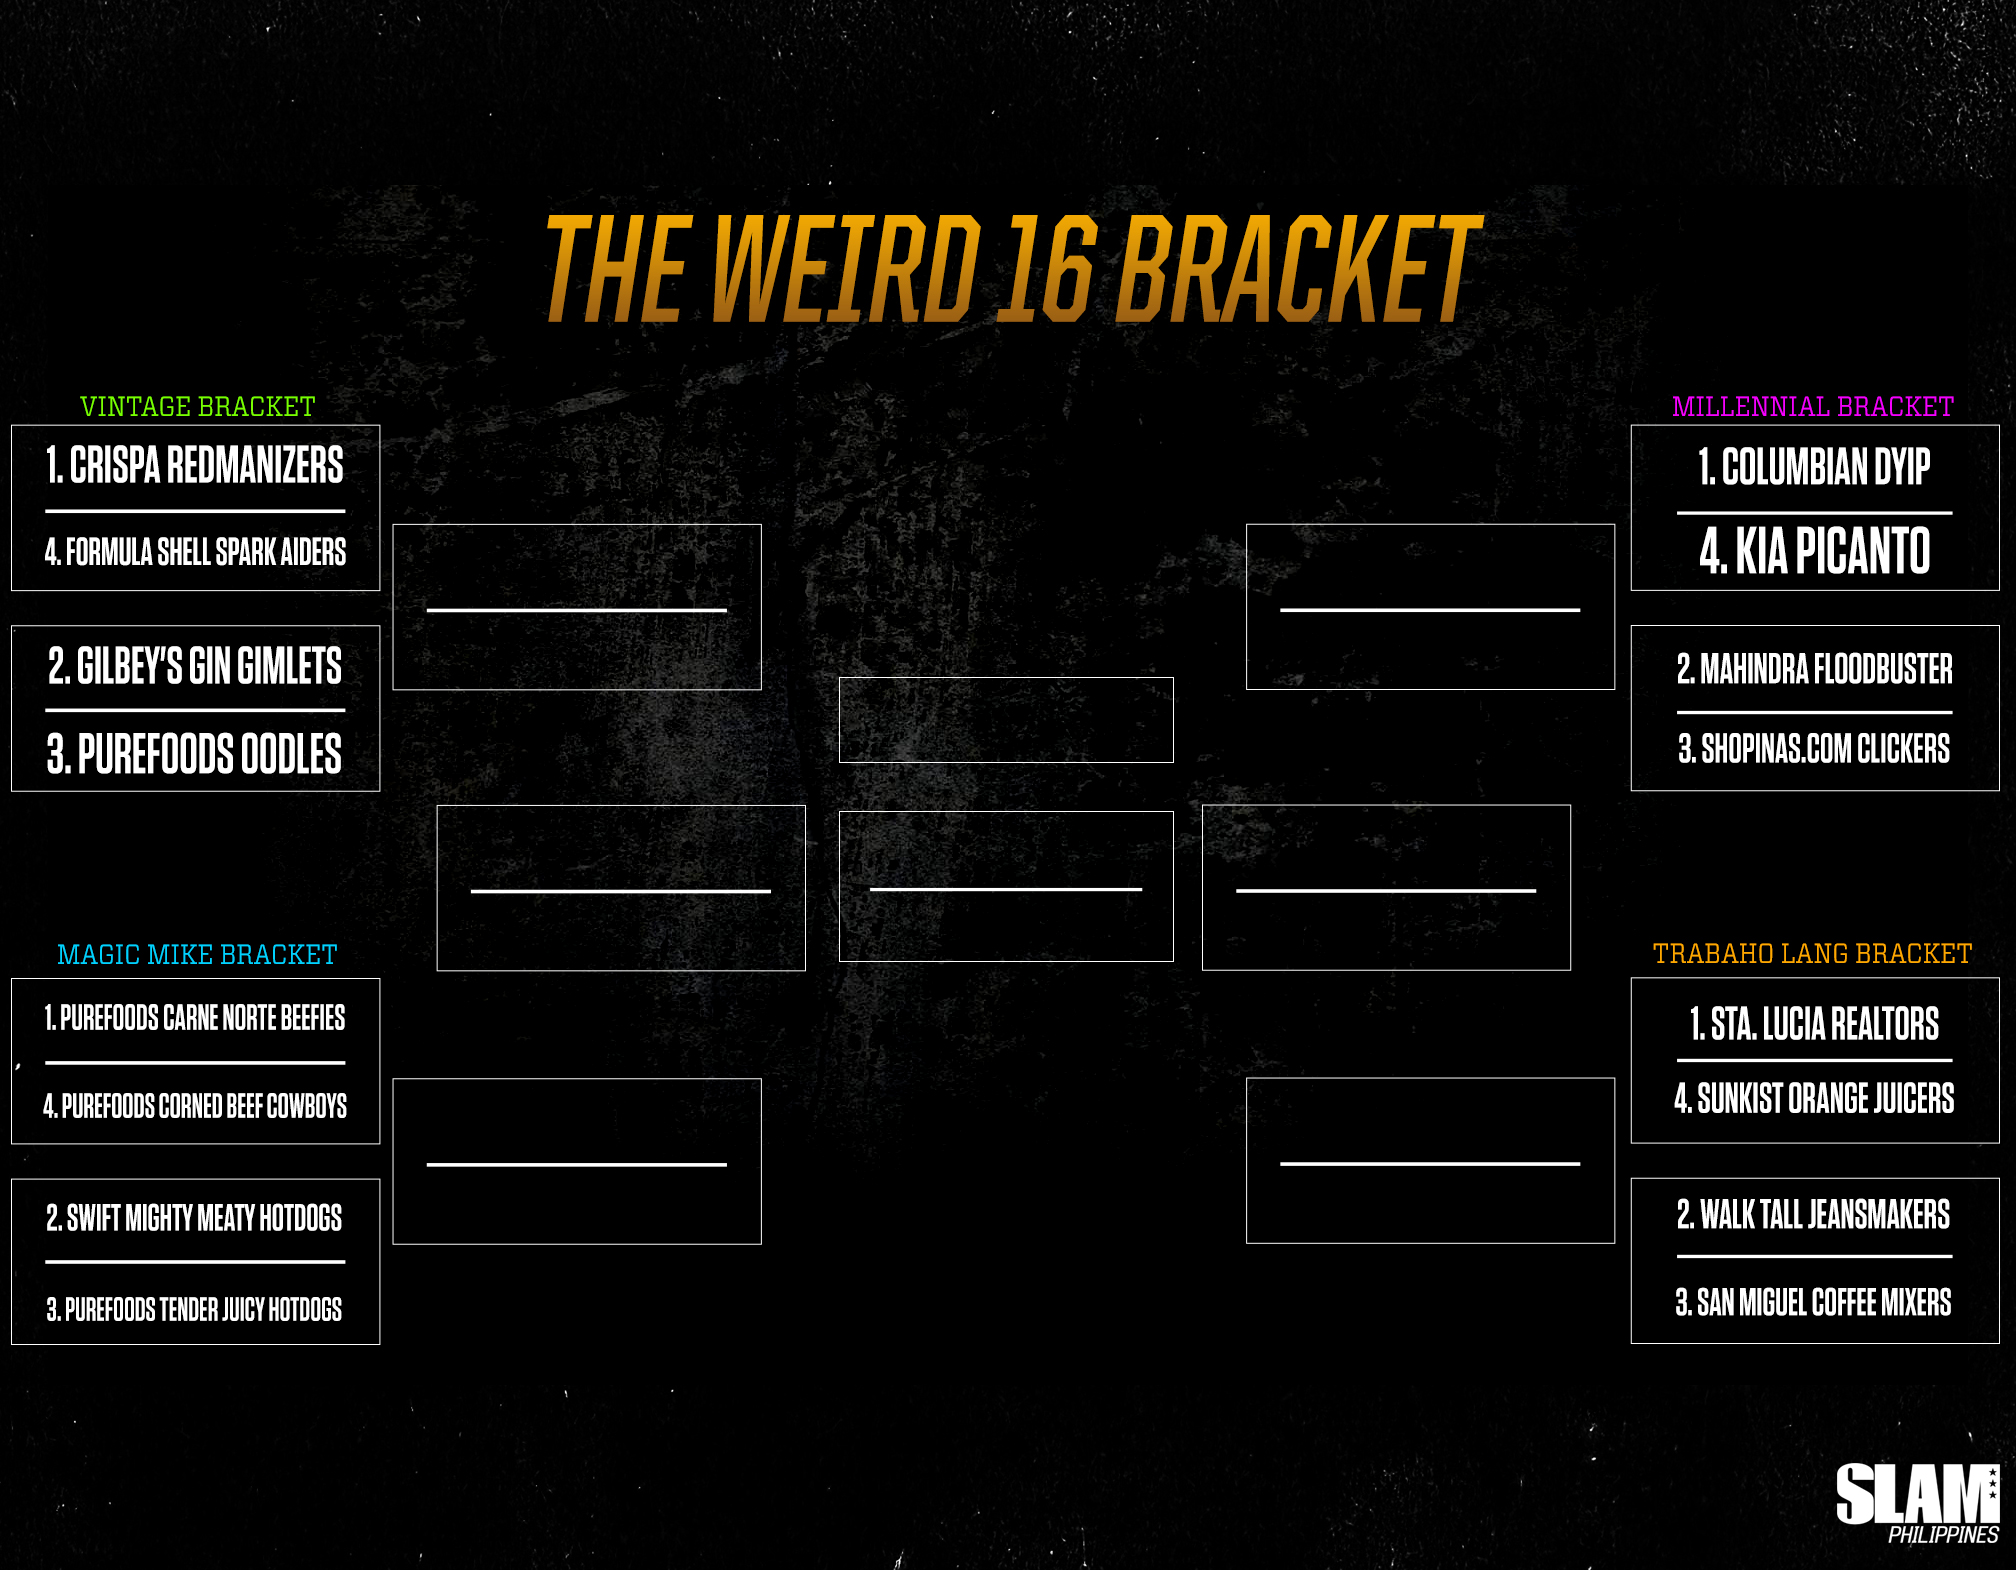 THE WEIRD 16 BRACKET: What's the weirdest PBA team name of all time